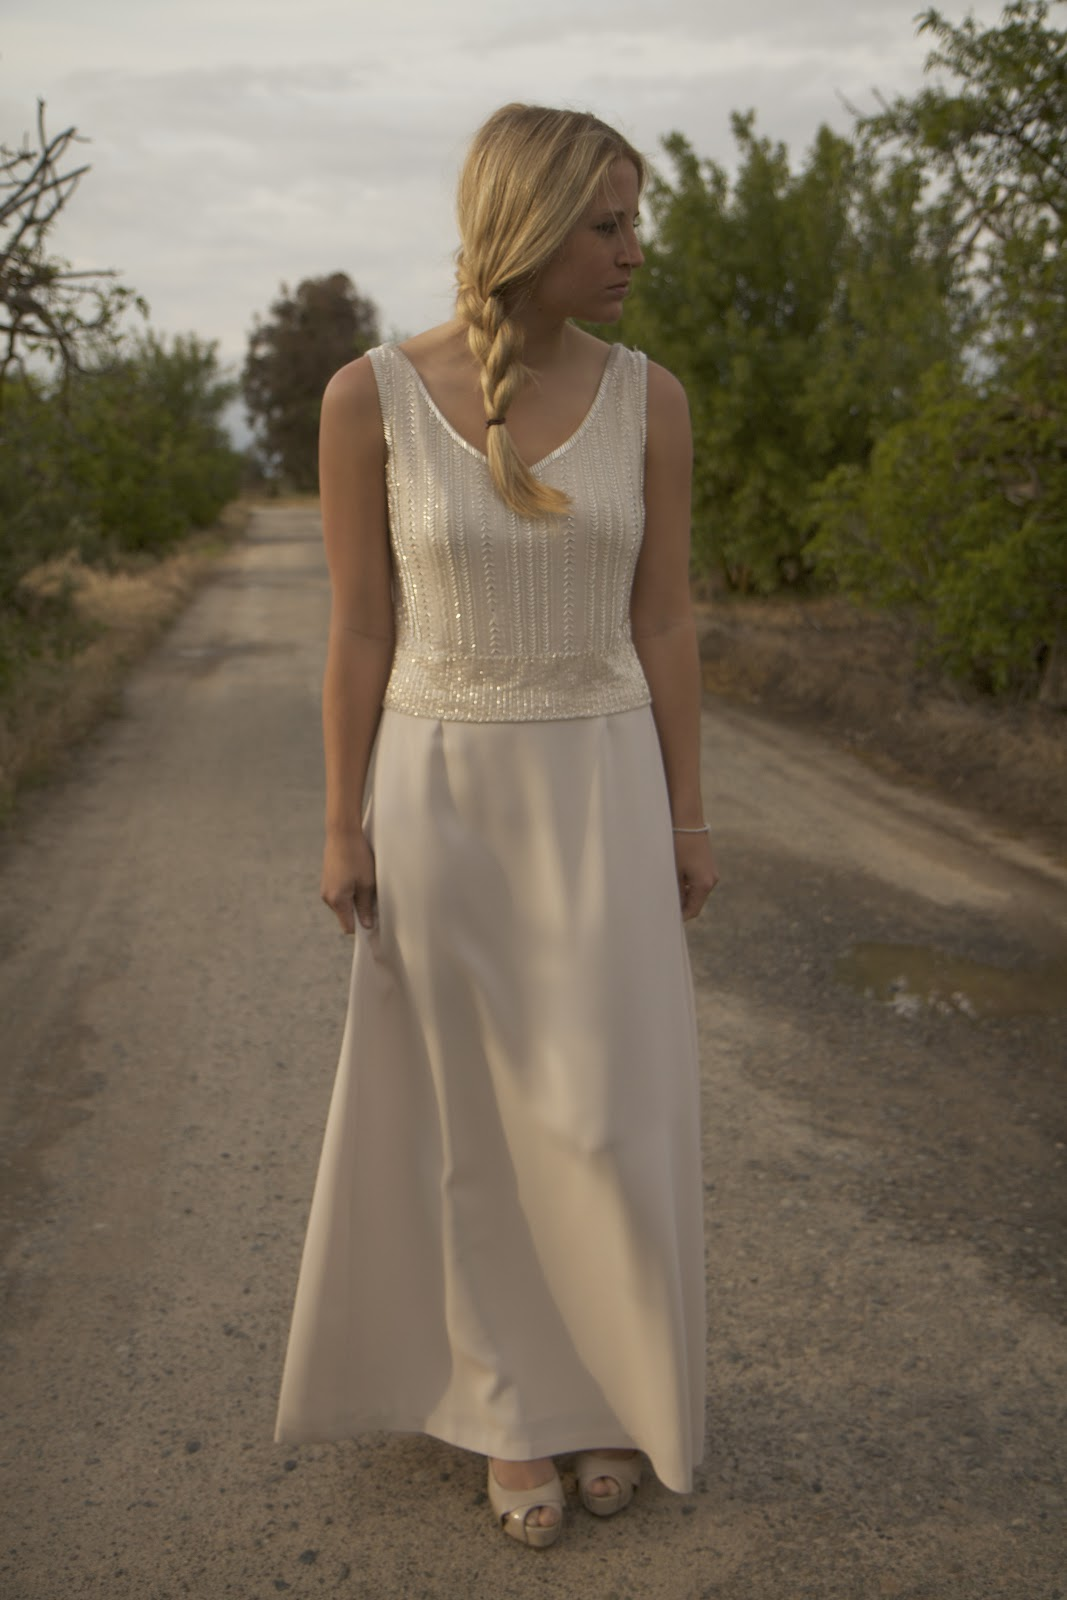 Champagne Amp Sequins Vintage Bohemian Hippie Wedding Dresses From Daughters Of Simone